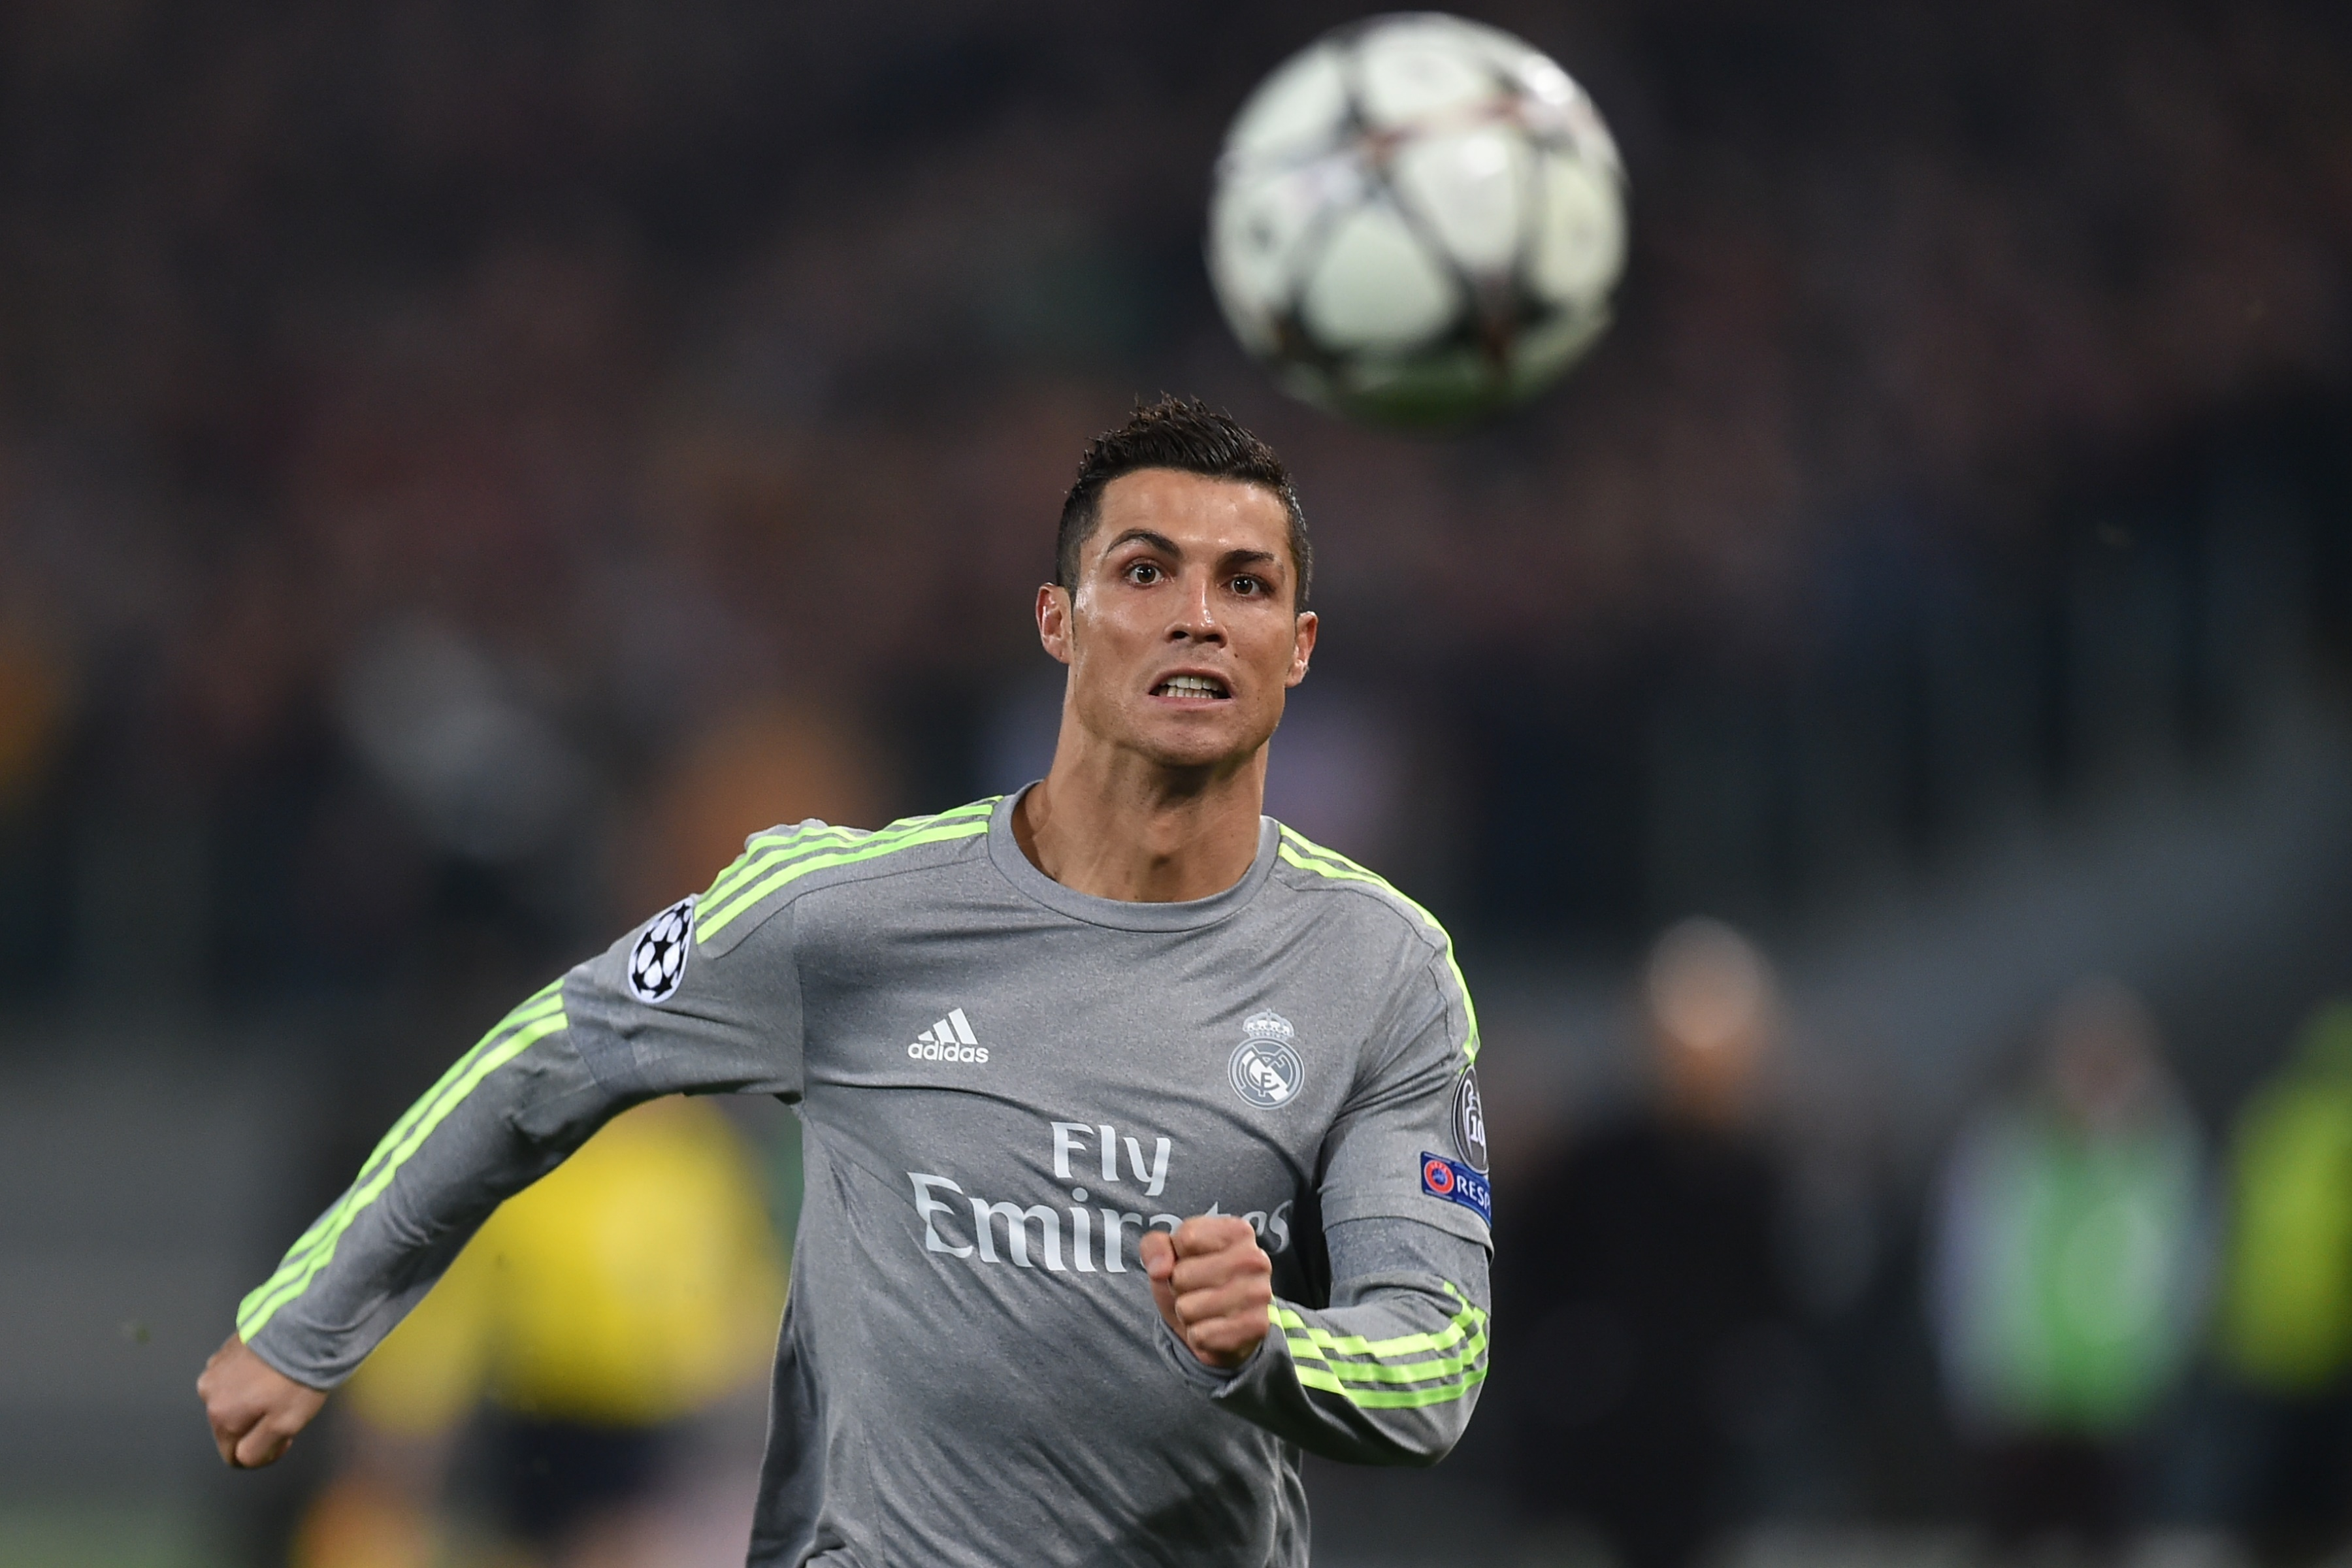 Real Madrid, Atletico Madrid, Real Madrid stream, Atletico Madrid stream, Real Madrid stream , Real Madrid Atletico Madrid, madrid derby stream, Real Madrid Atletico Madrid live, Real Madrid streaming, Real Madrid Atletico Madrid stream, online, watch, free, live, channel, app, phone, console, tablet, madrid derby,